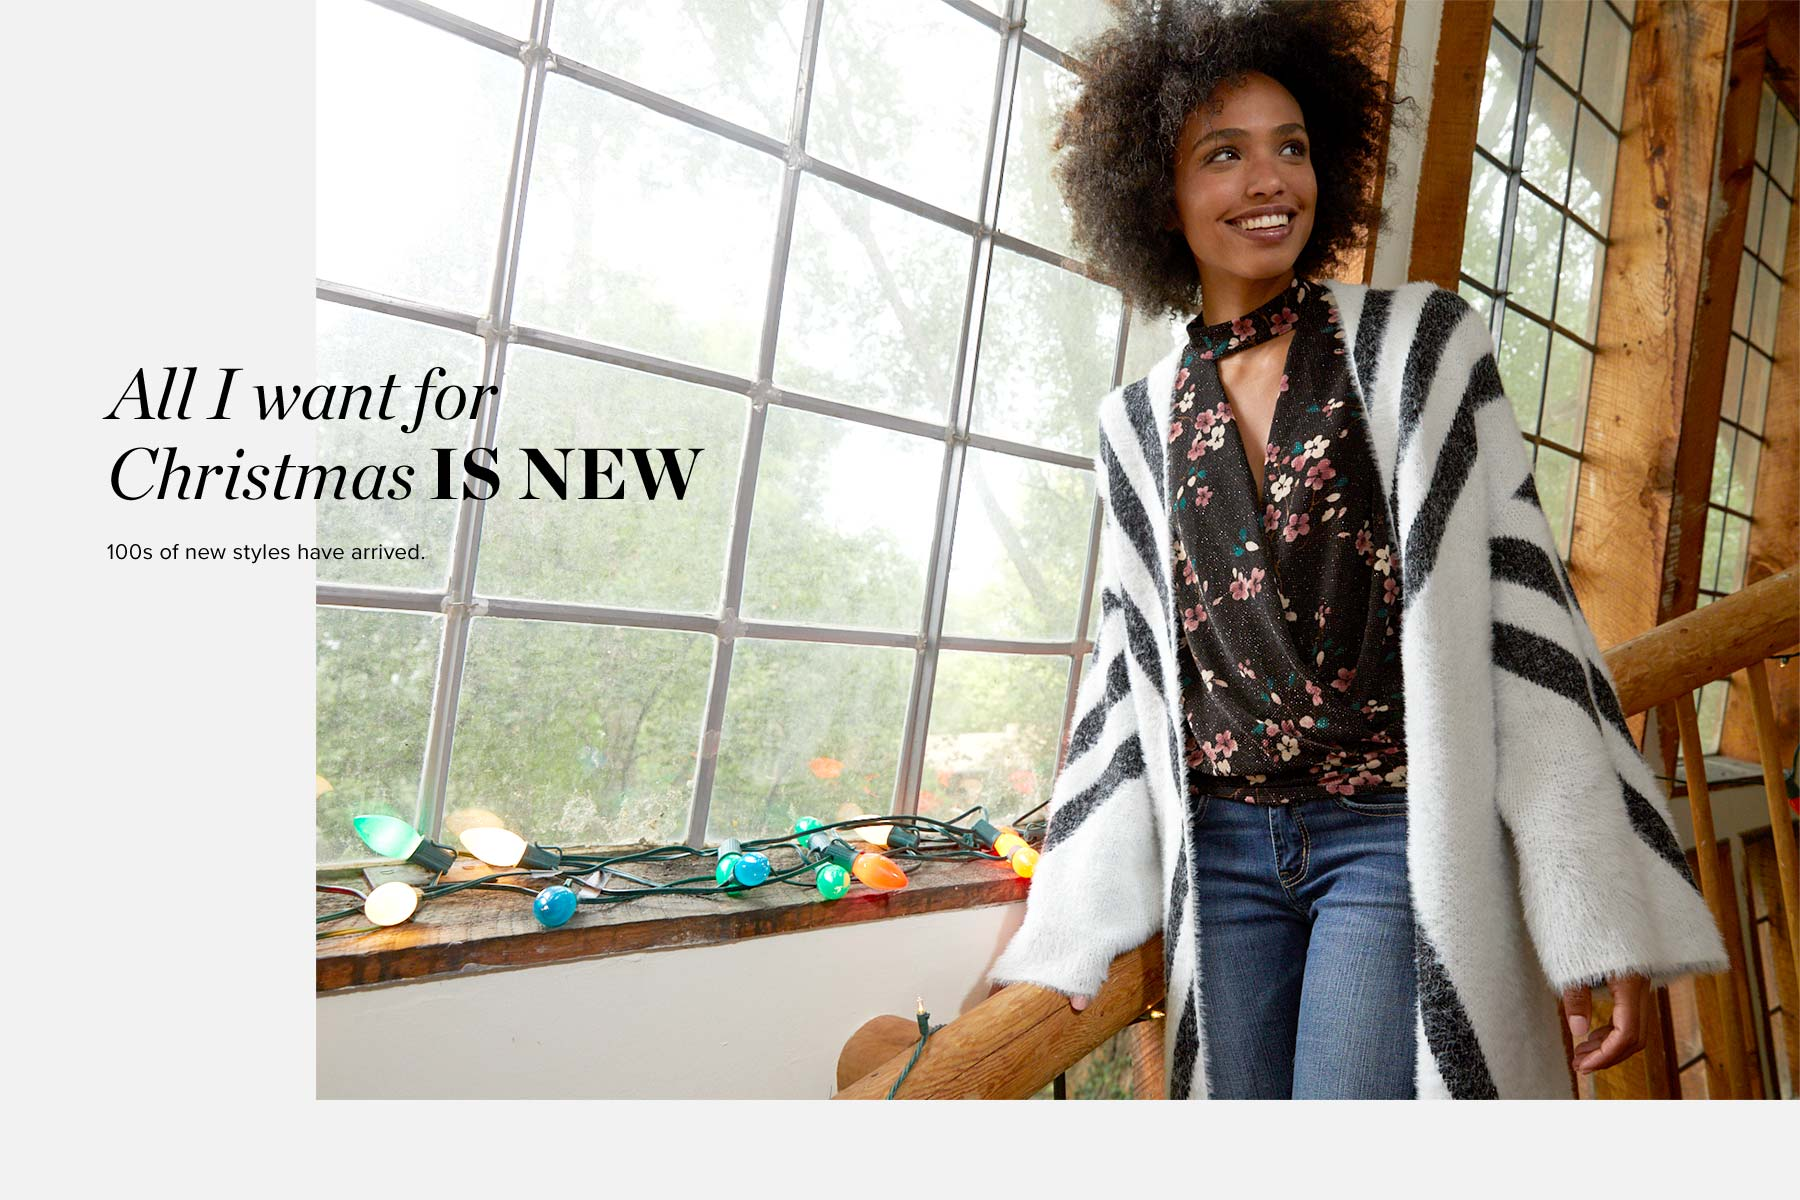 All I Want For Christmas IS NEW - 100s of new styles have arrived. Girl wearing a black floral blouse with a white and black striped cardigan and dark wash jeans